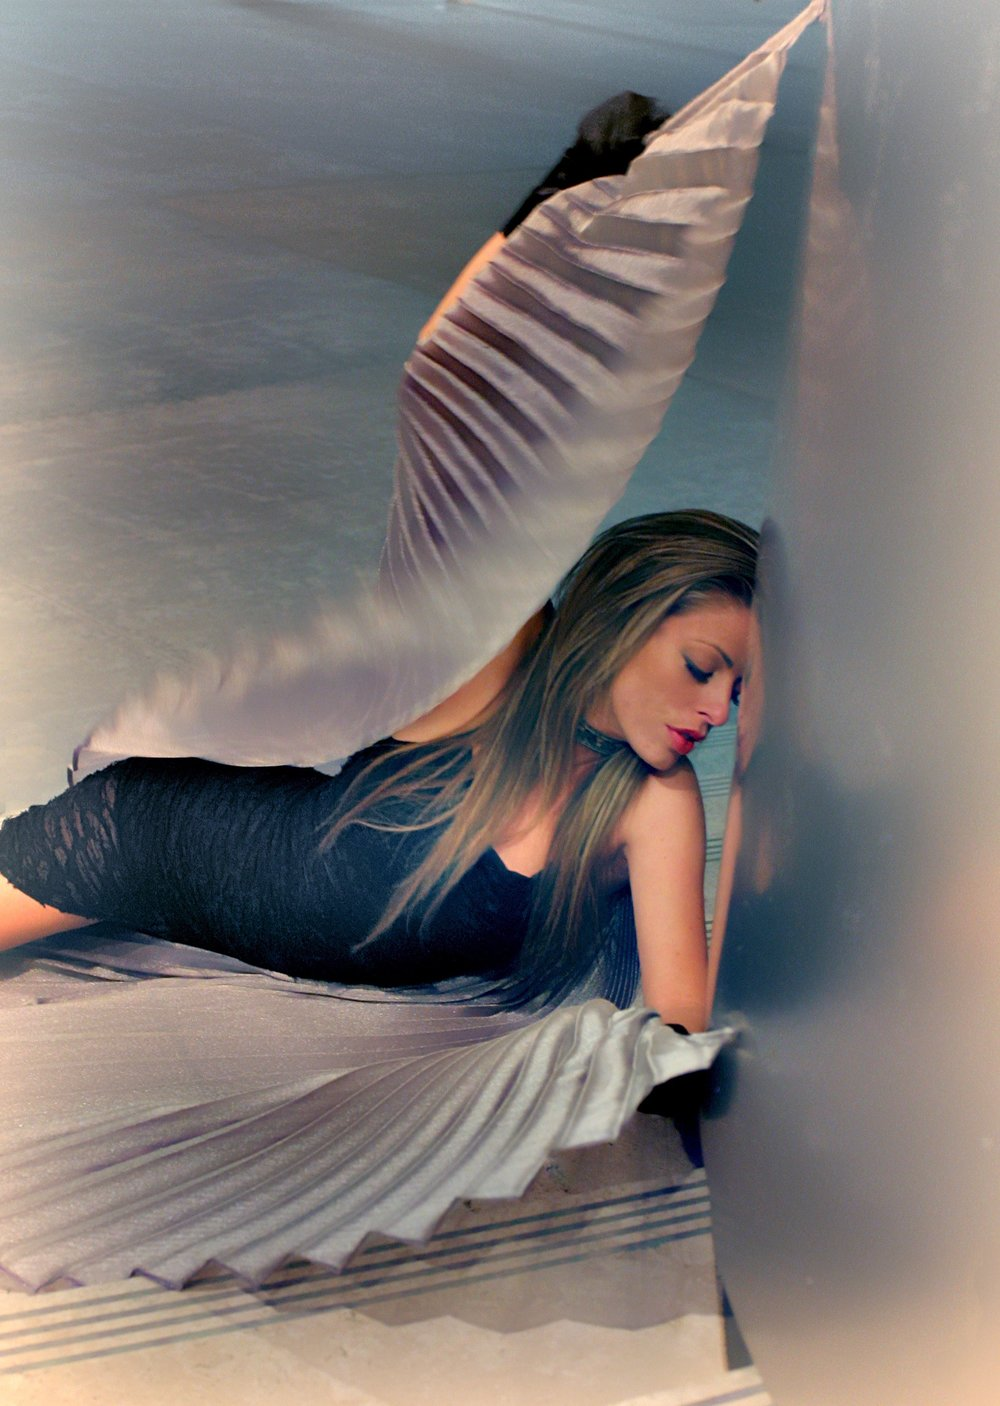 Music Artist posing with angel wings